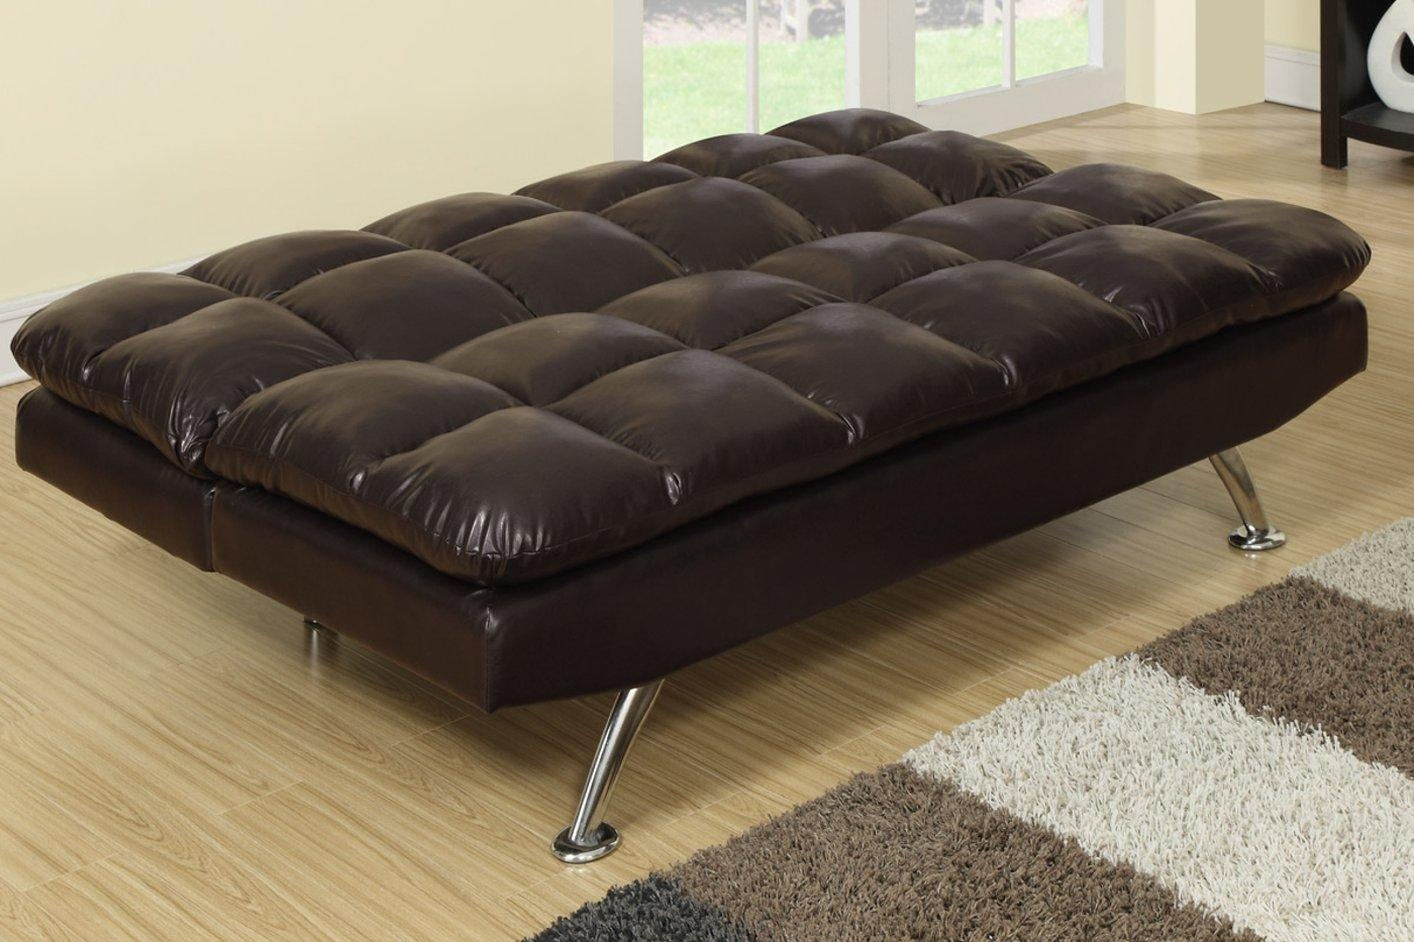 Brown Leather Twin Size Sofa Bed – Steal A Sofa Furniture Outlet With Regard To Twin Sofa Chairs (Image 3 of 20)